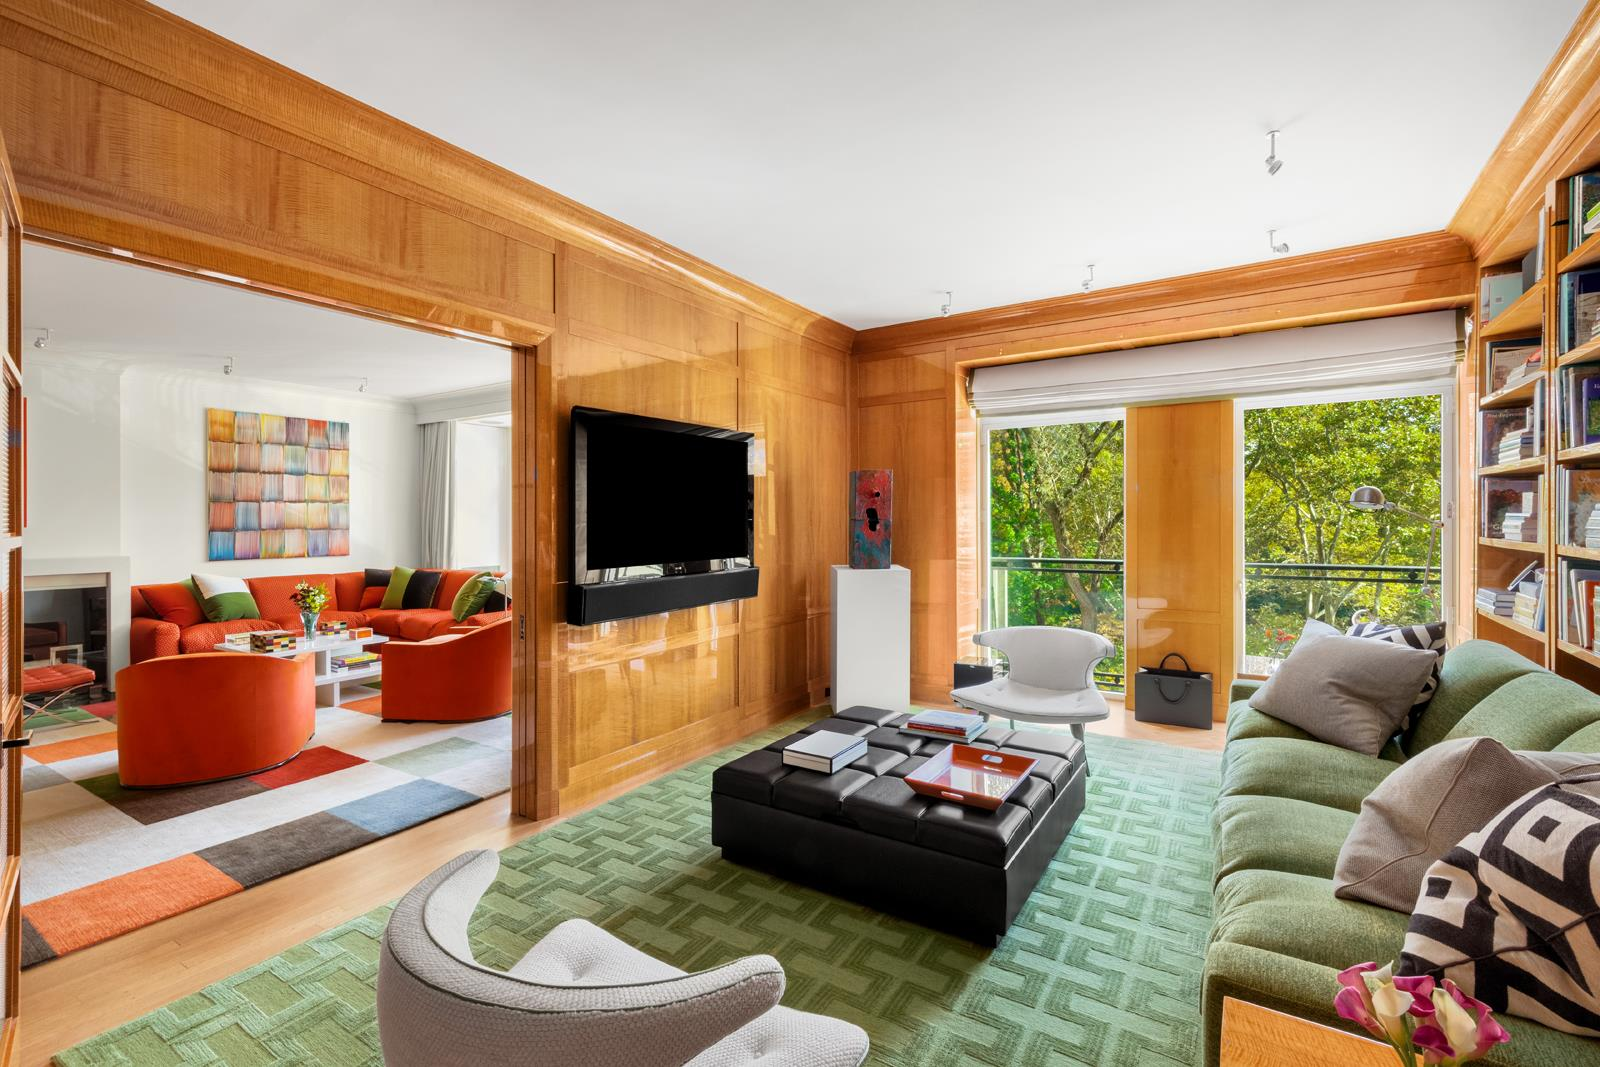 15 Cpw 15 Central Park West 5c Property Listings